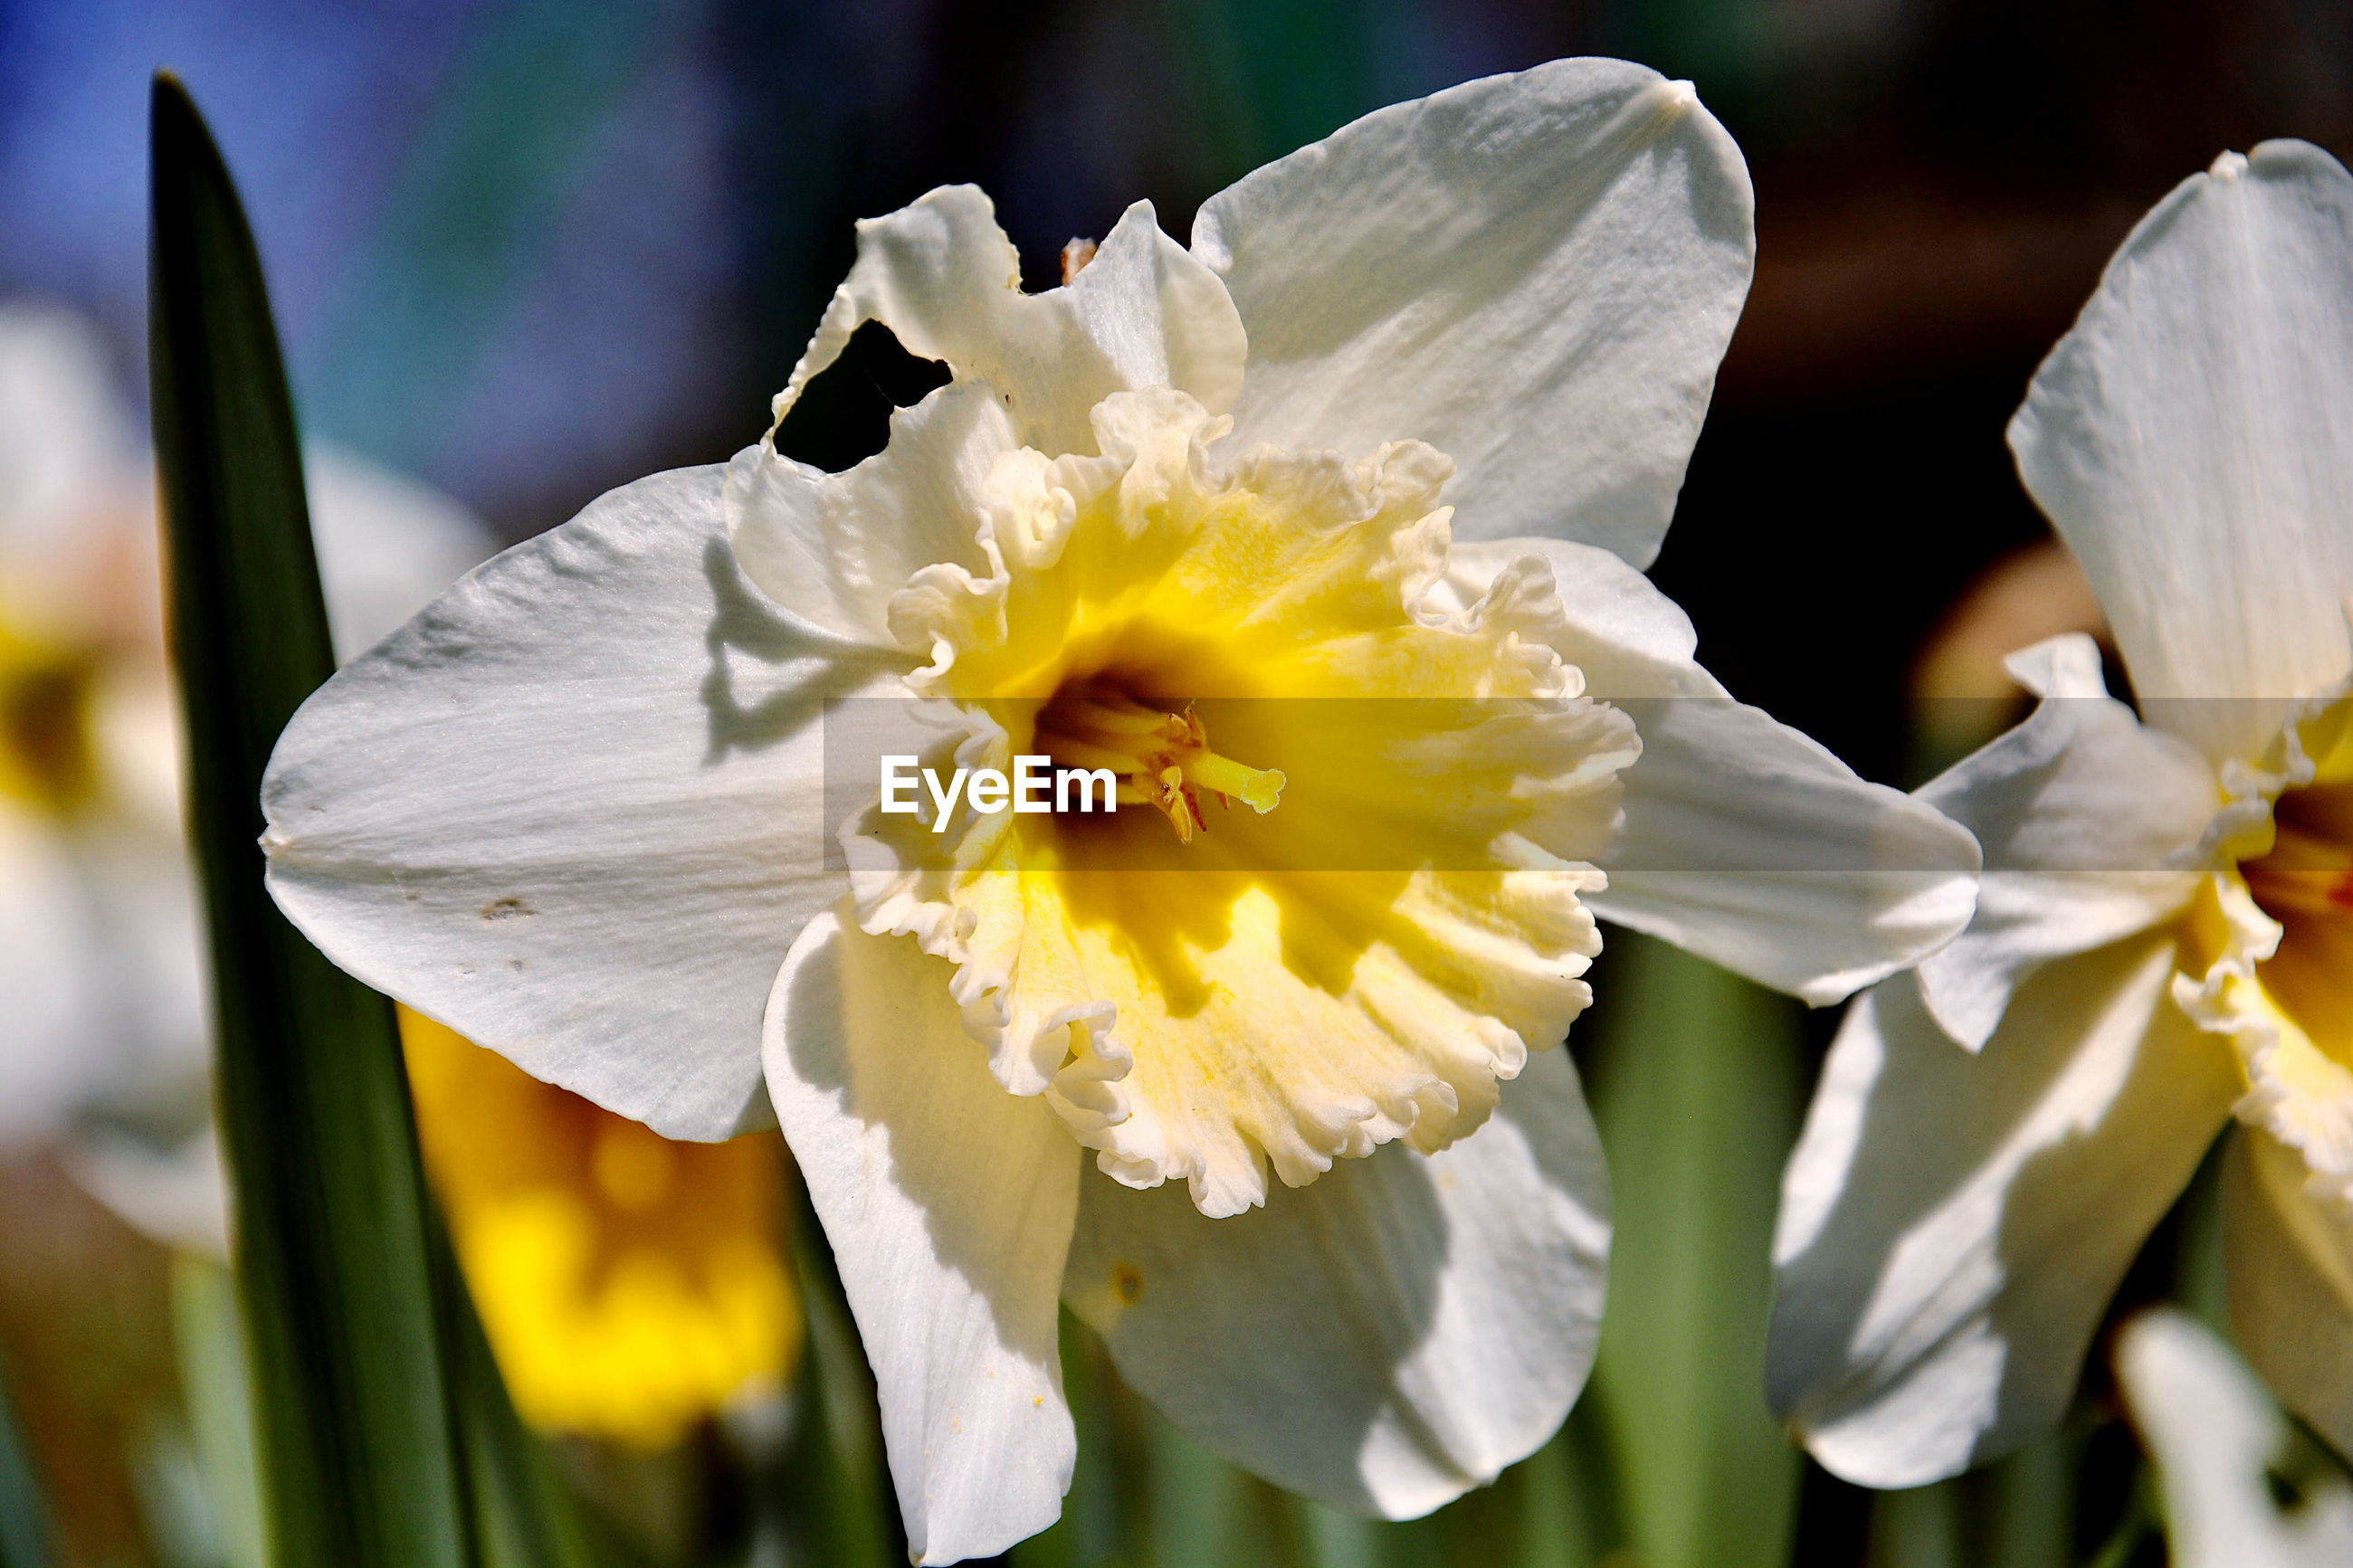 CLOSE-UP OF WHITE AND YELLOW DAFFODIL